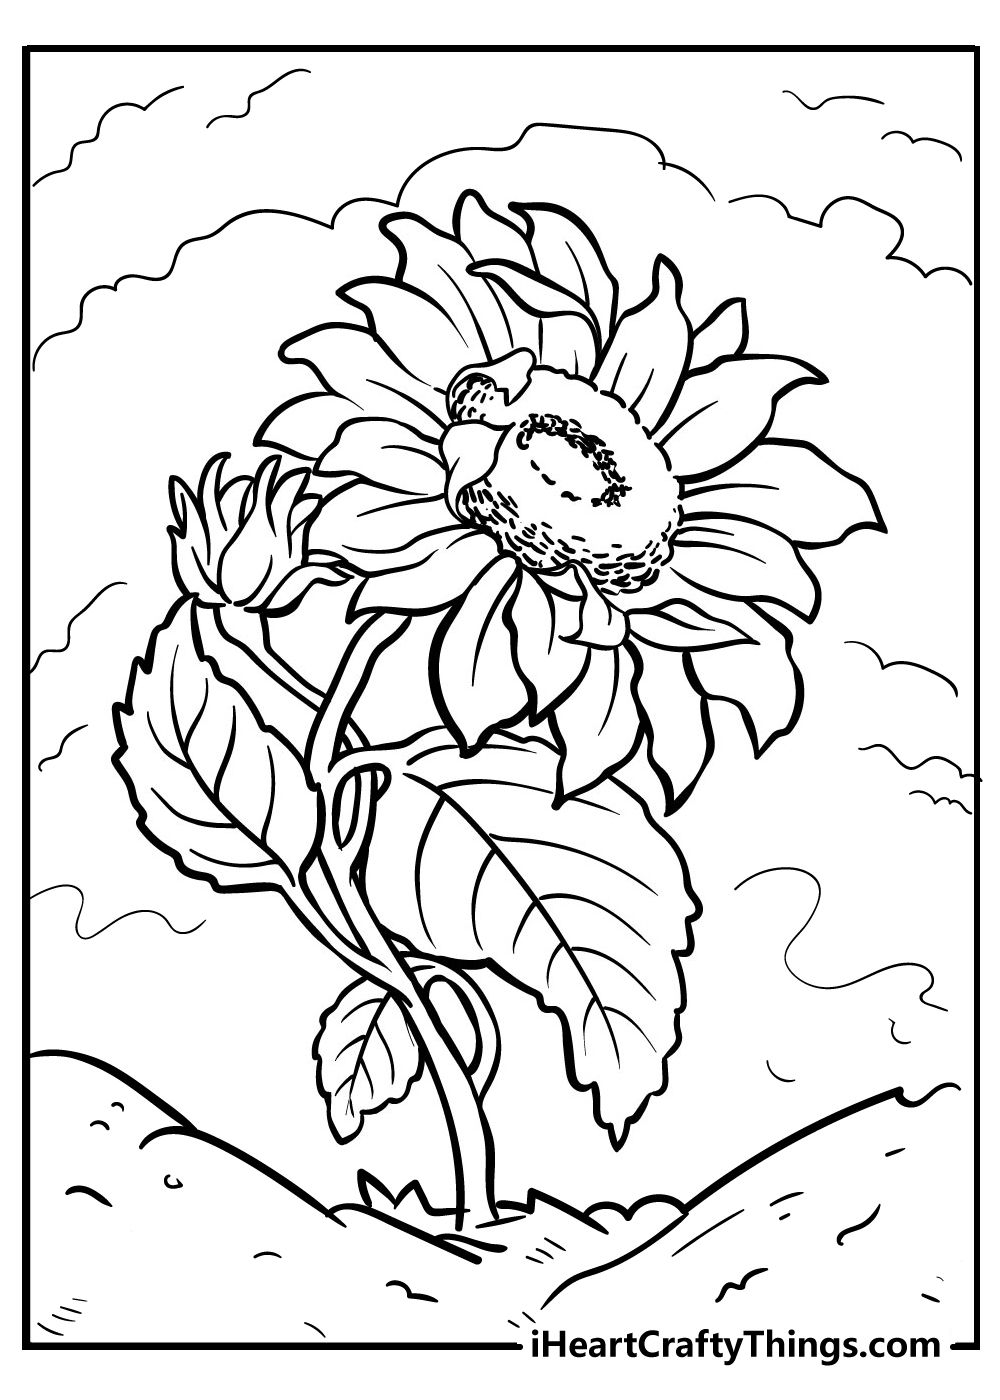 sunflower images for kids to color